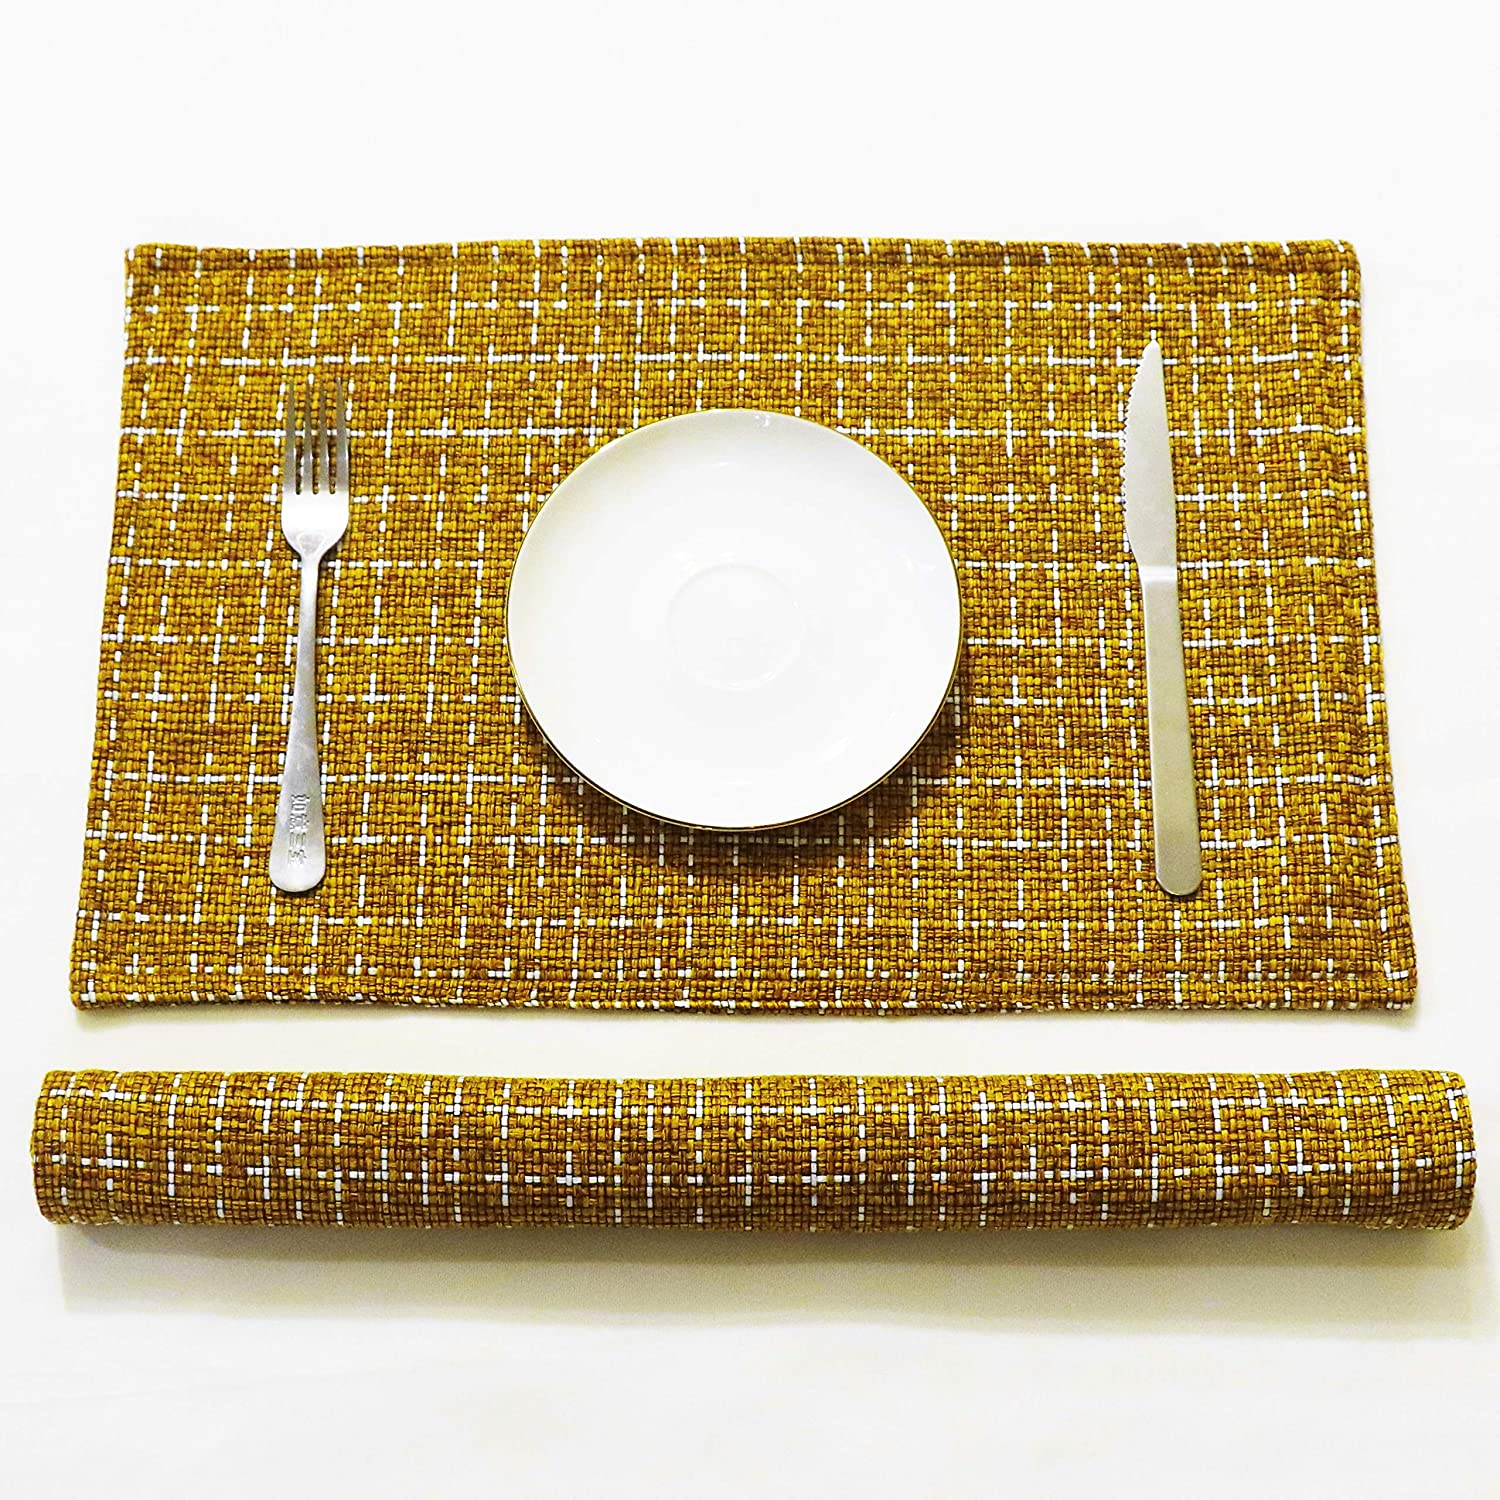 SLOW COW Linen Placemats Heat Resistant Dining Table Place Mats Kitchen Washable Table Mats Set of 2, Brown Mustard: Home & Kitchen